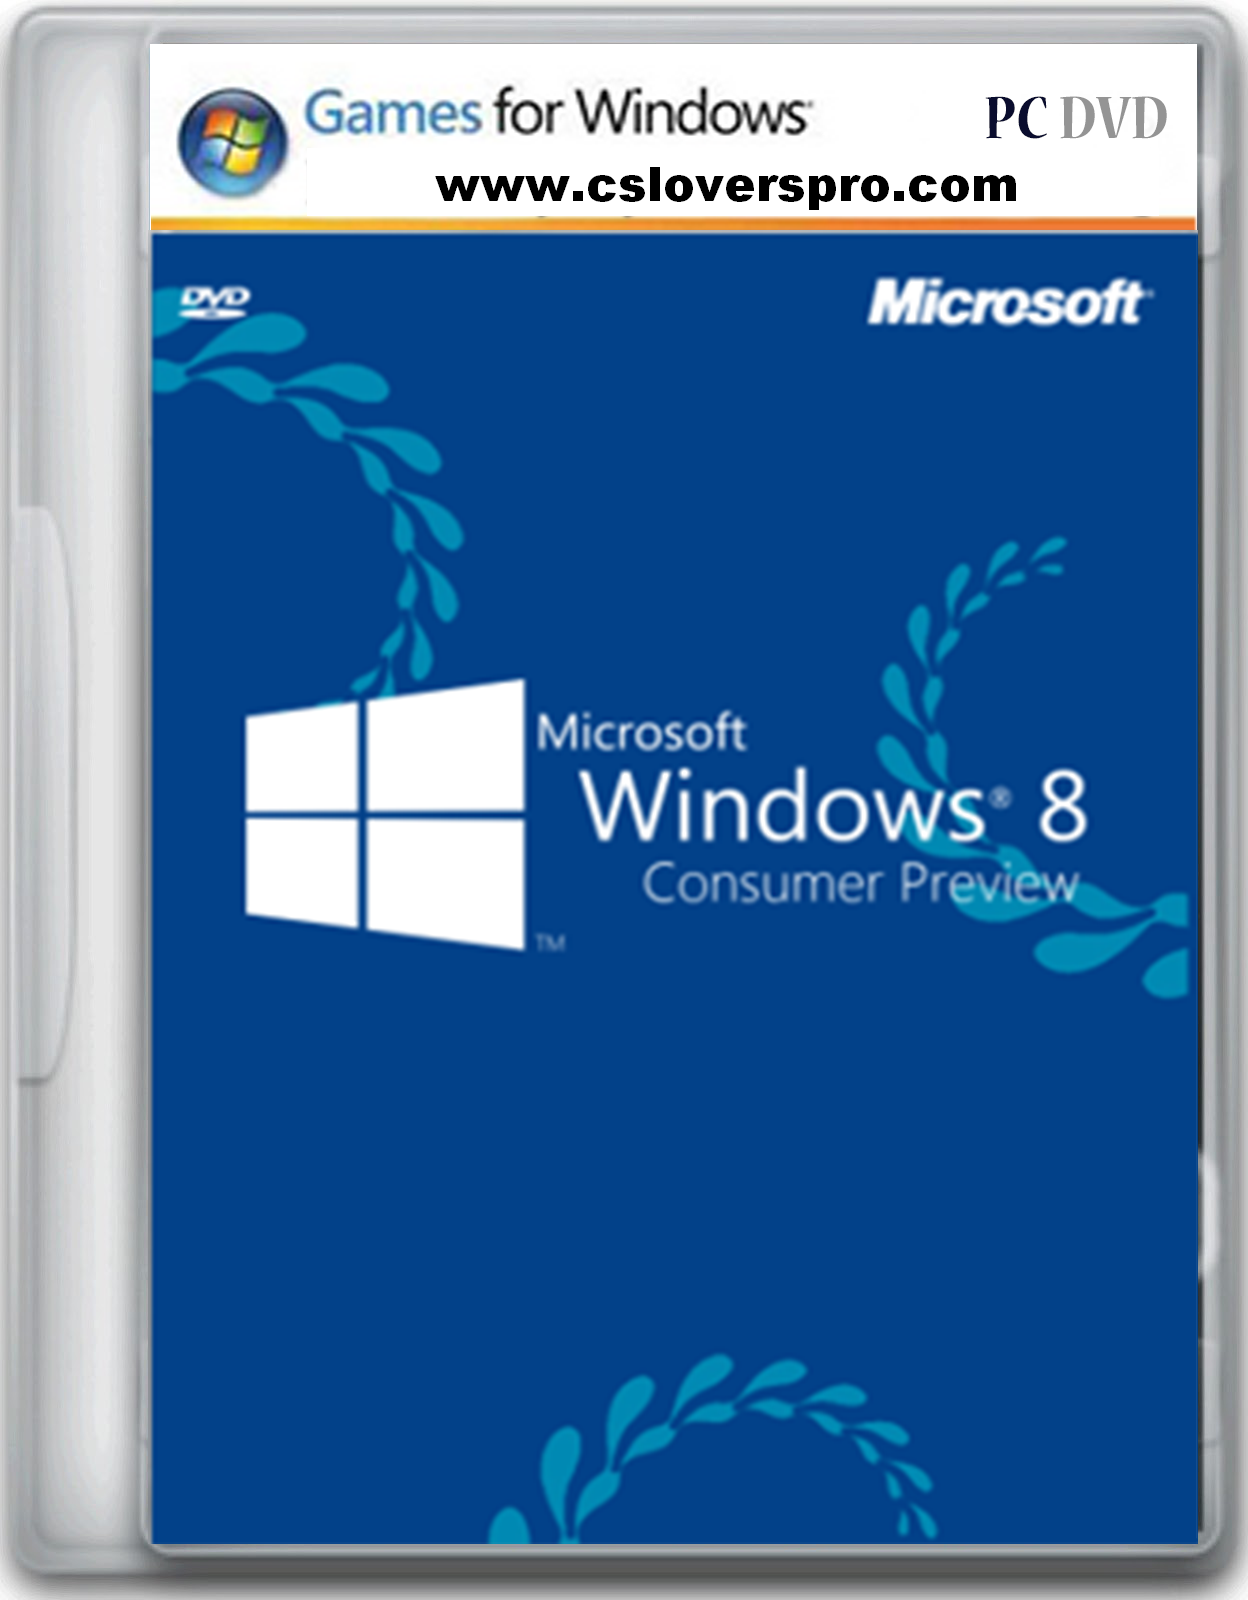 Windows 8 Consumer Preview has been expired by microsoft corporation 1248x1600